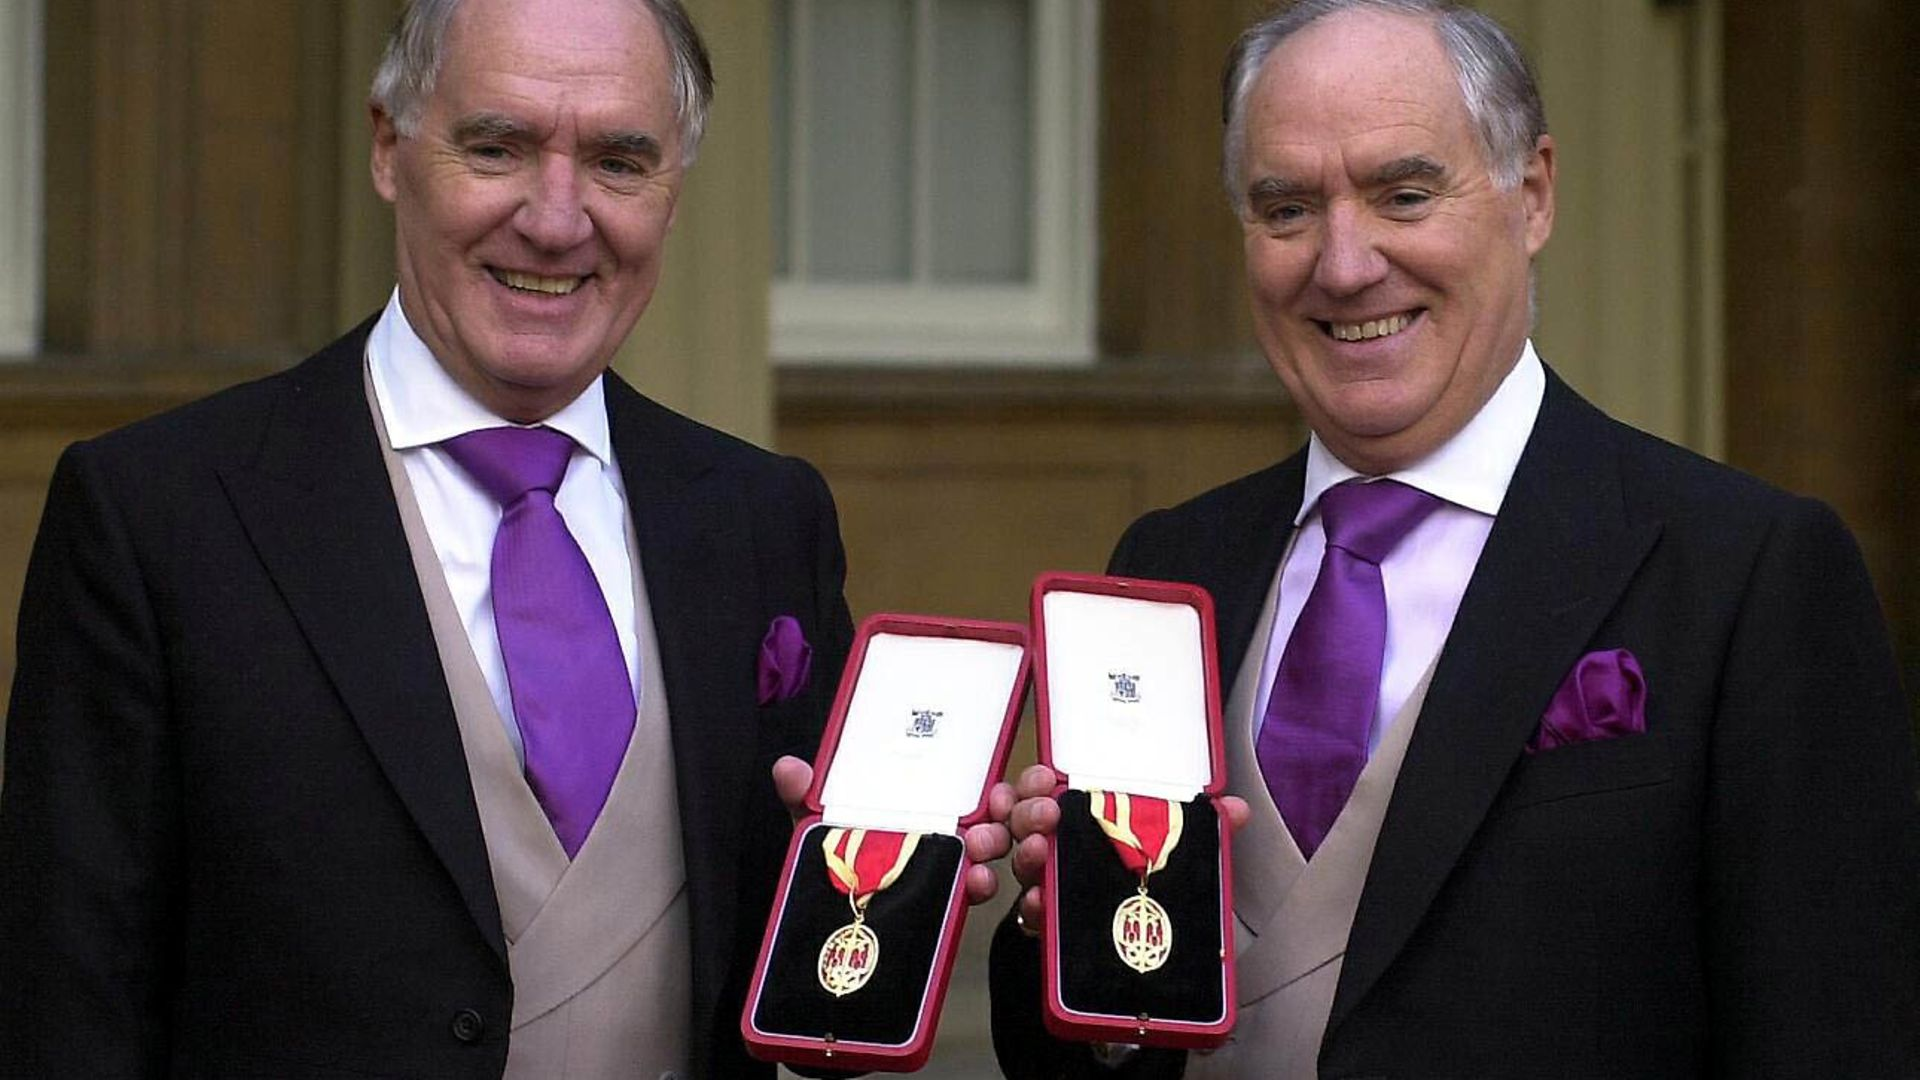 Multi-millionaires Sir David Barclay (left) and his twin brother Sir Frederick after receiving their knighthoods from the Queen at Buckingham Palace. - Credit: PA